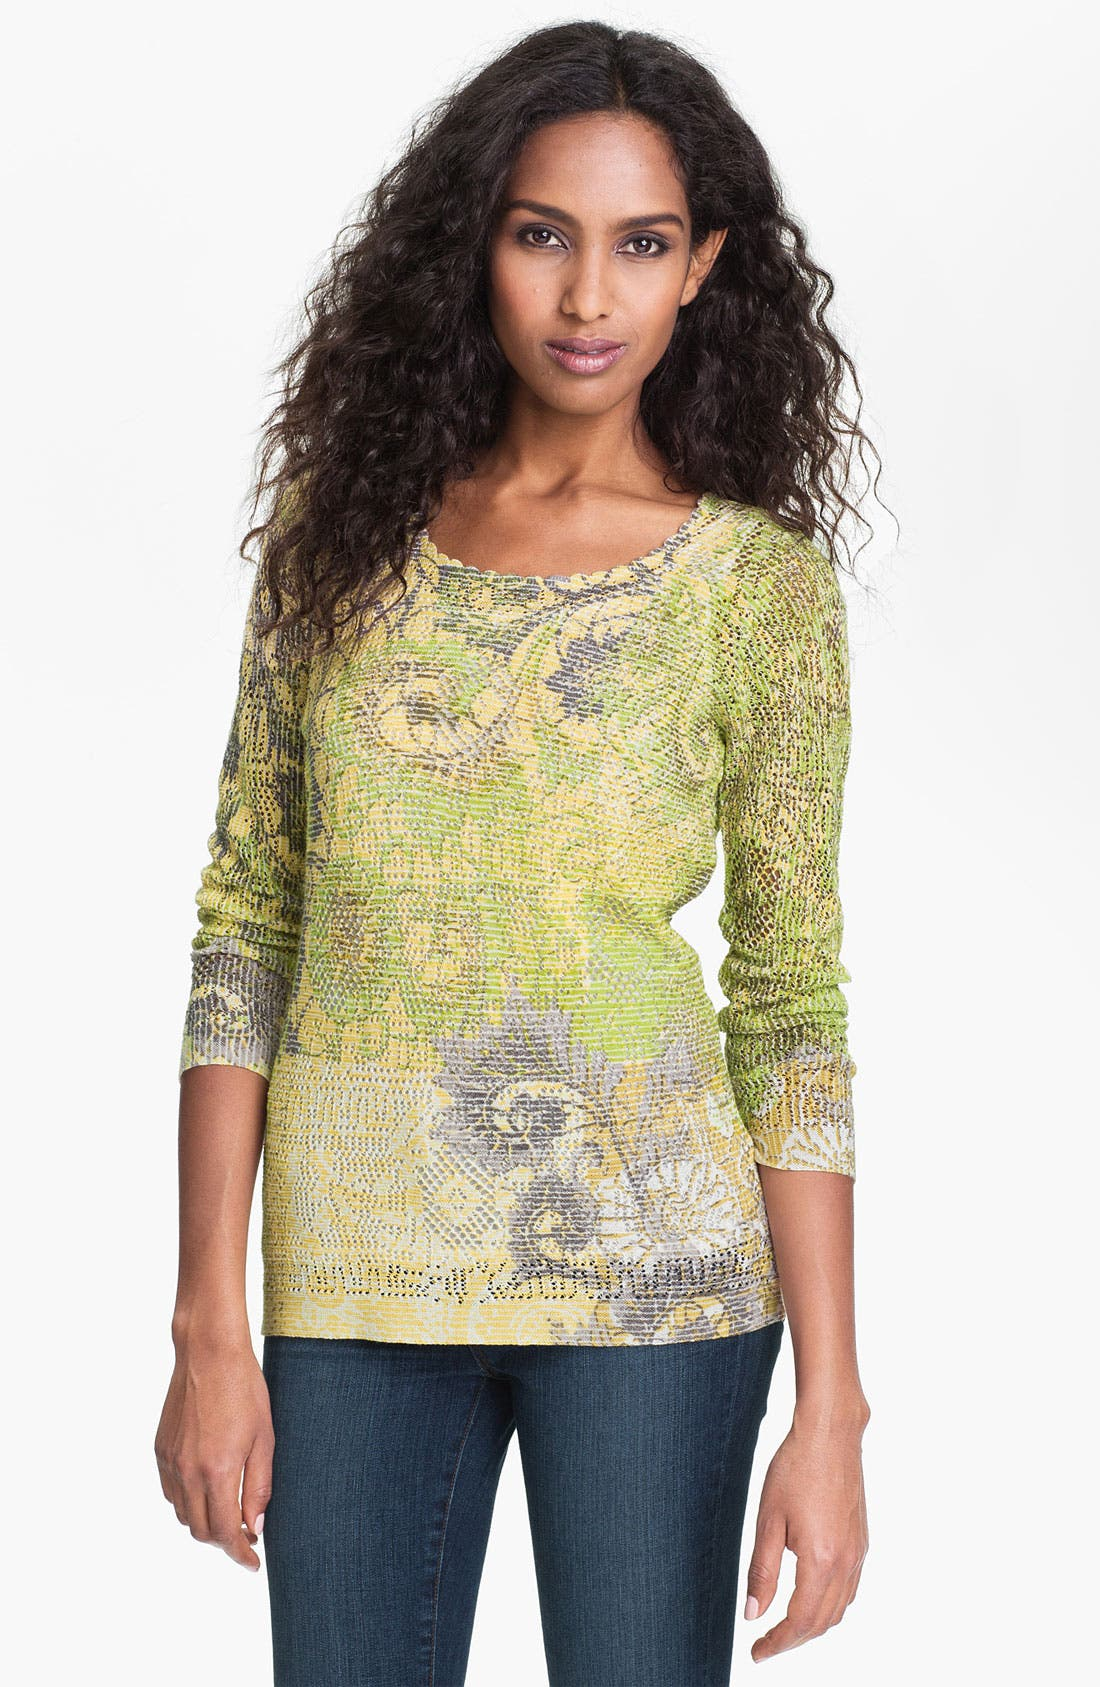 Main Image - Nic + Zoe 'Field of Lace' Top